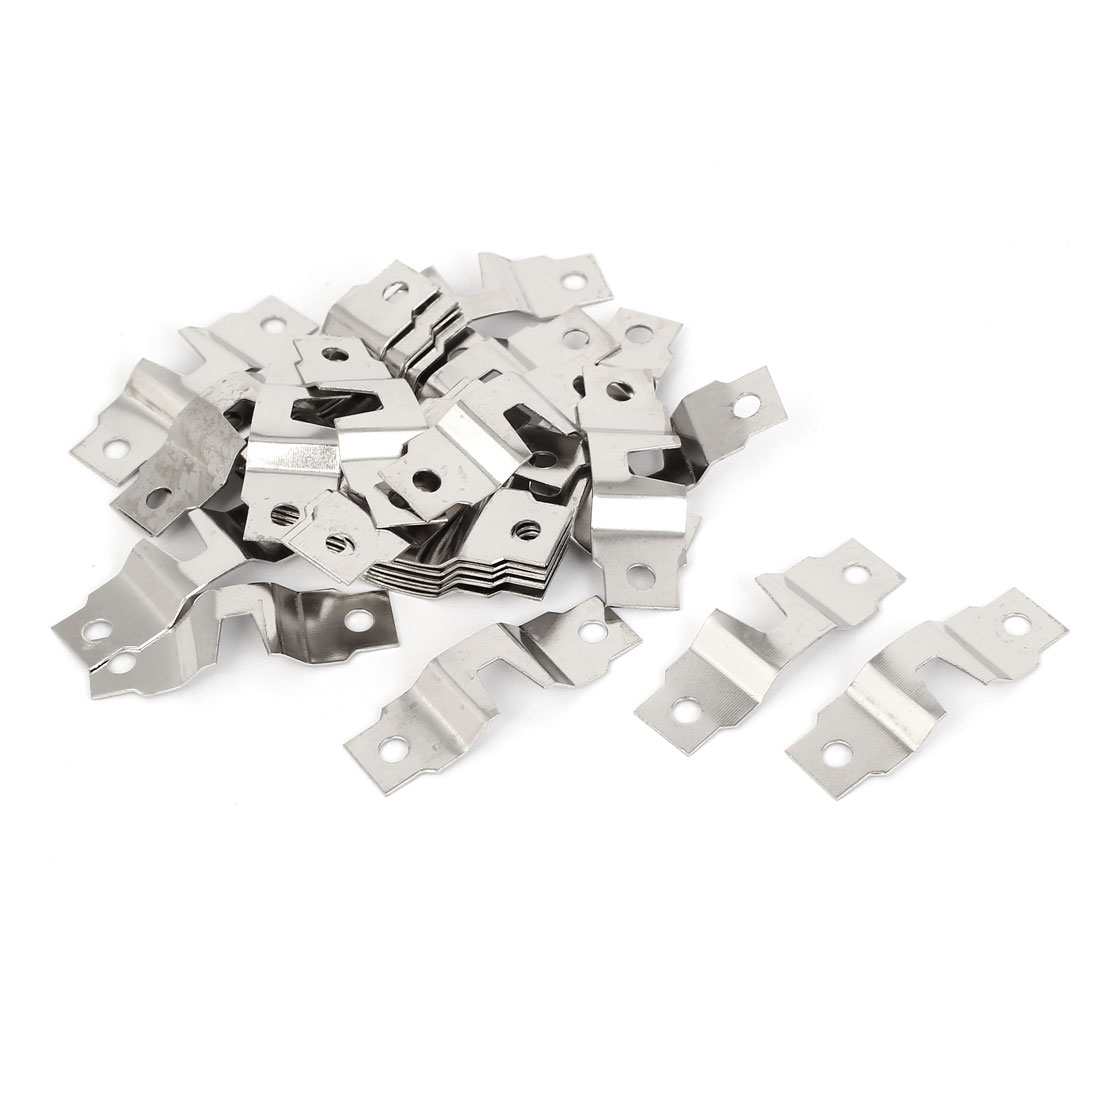 47mm x 15mm x 4mm Metal Double Hole Picture Frame Hanging Hooks Hangers 30PCS